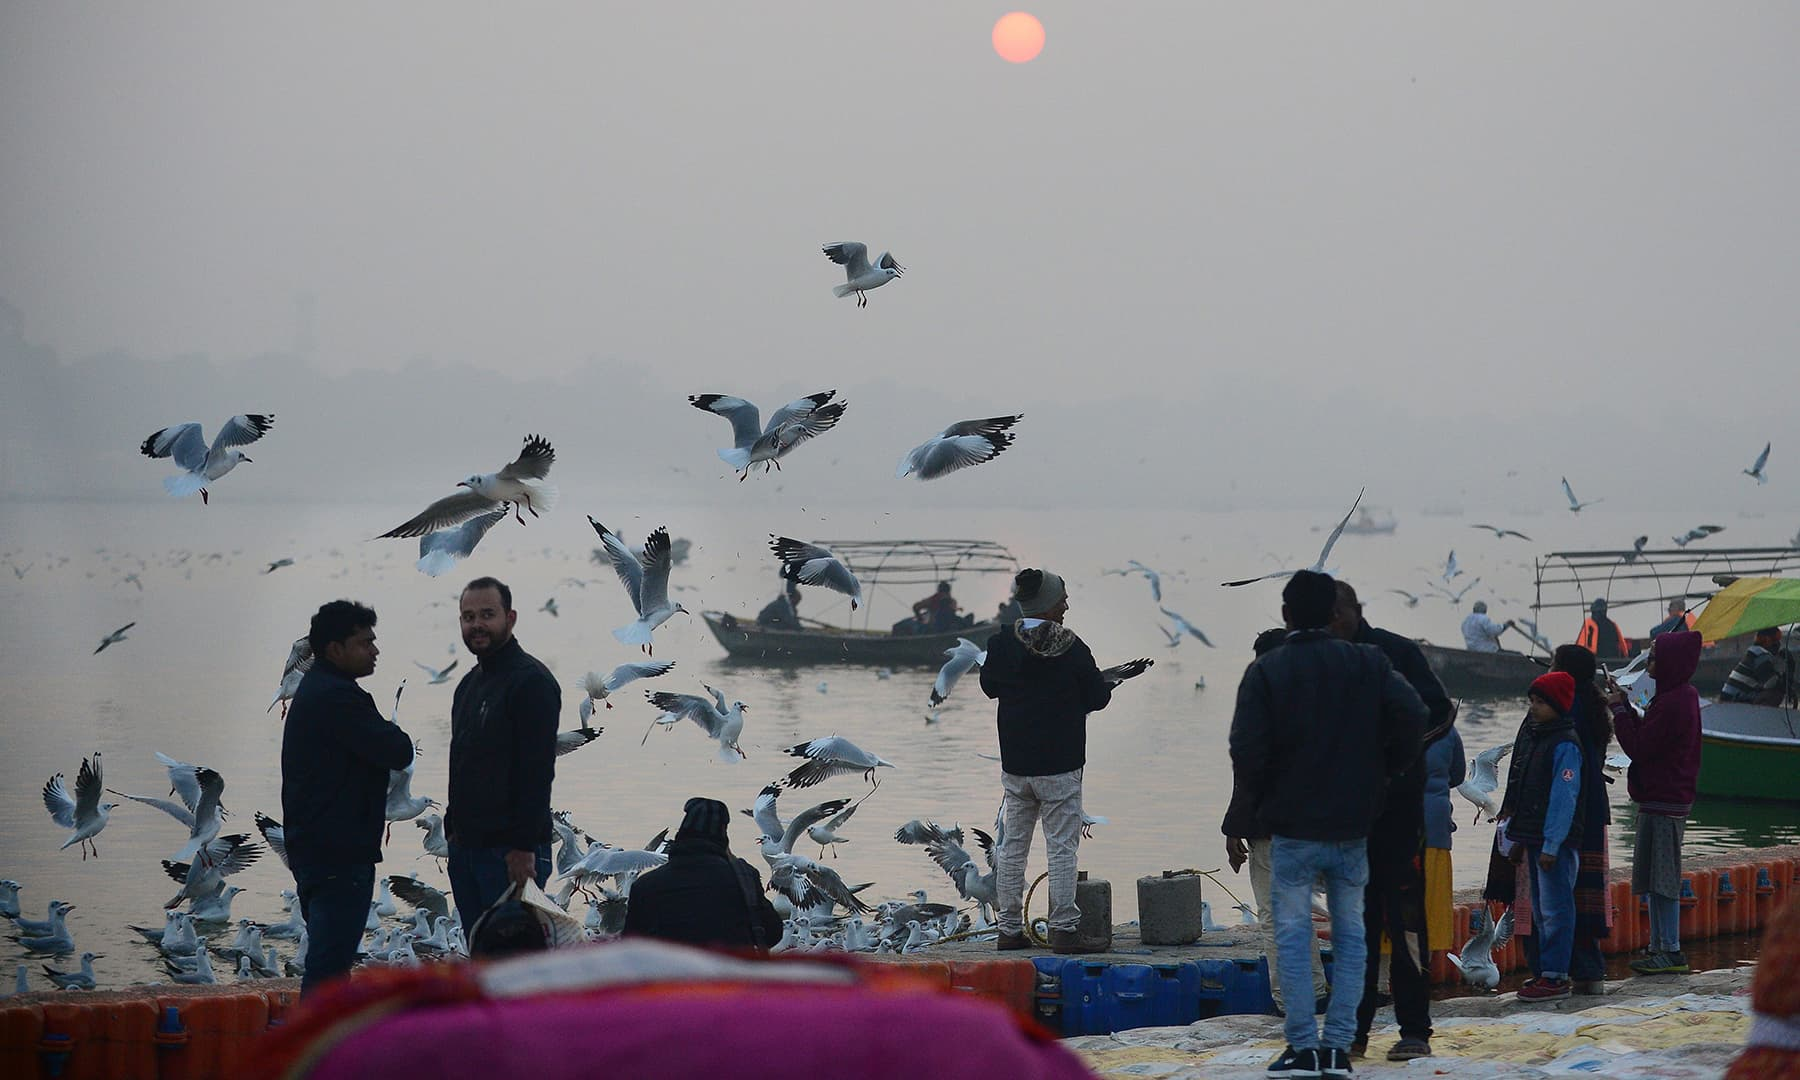 People feed seagulls ride during the last sunset of the year at the Sangam area, the confluence of the rivers Ganges, Yamuna and mythical Saraswati in Allahabad on Tuesday. — AFP